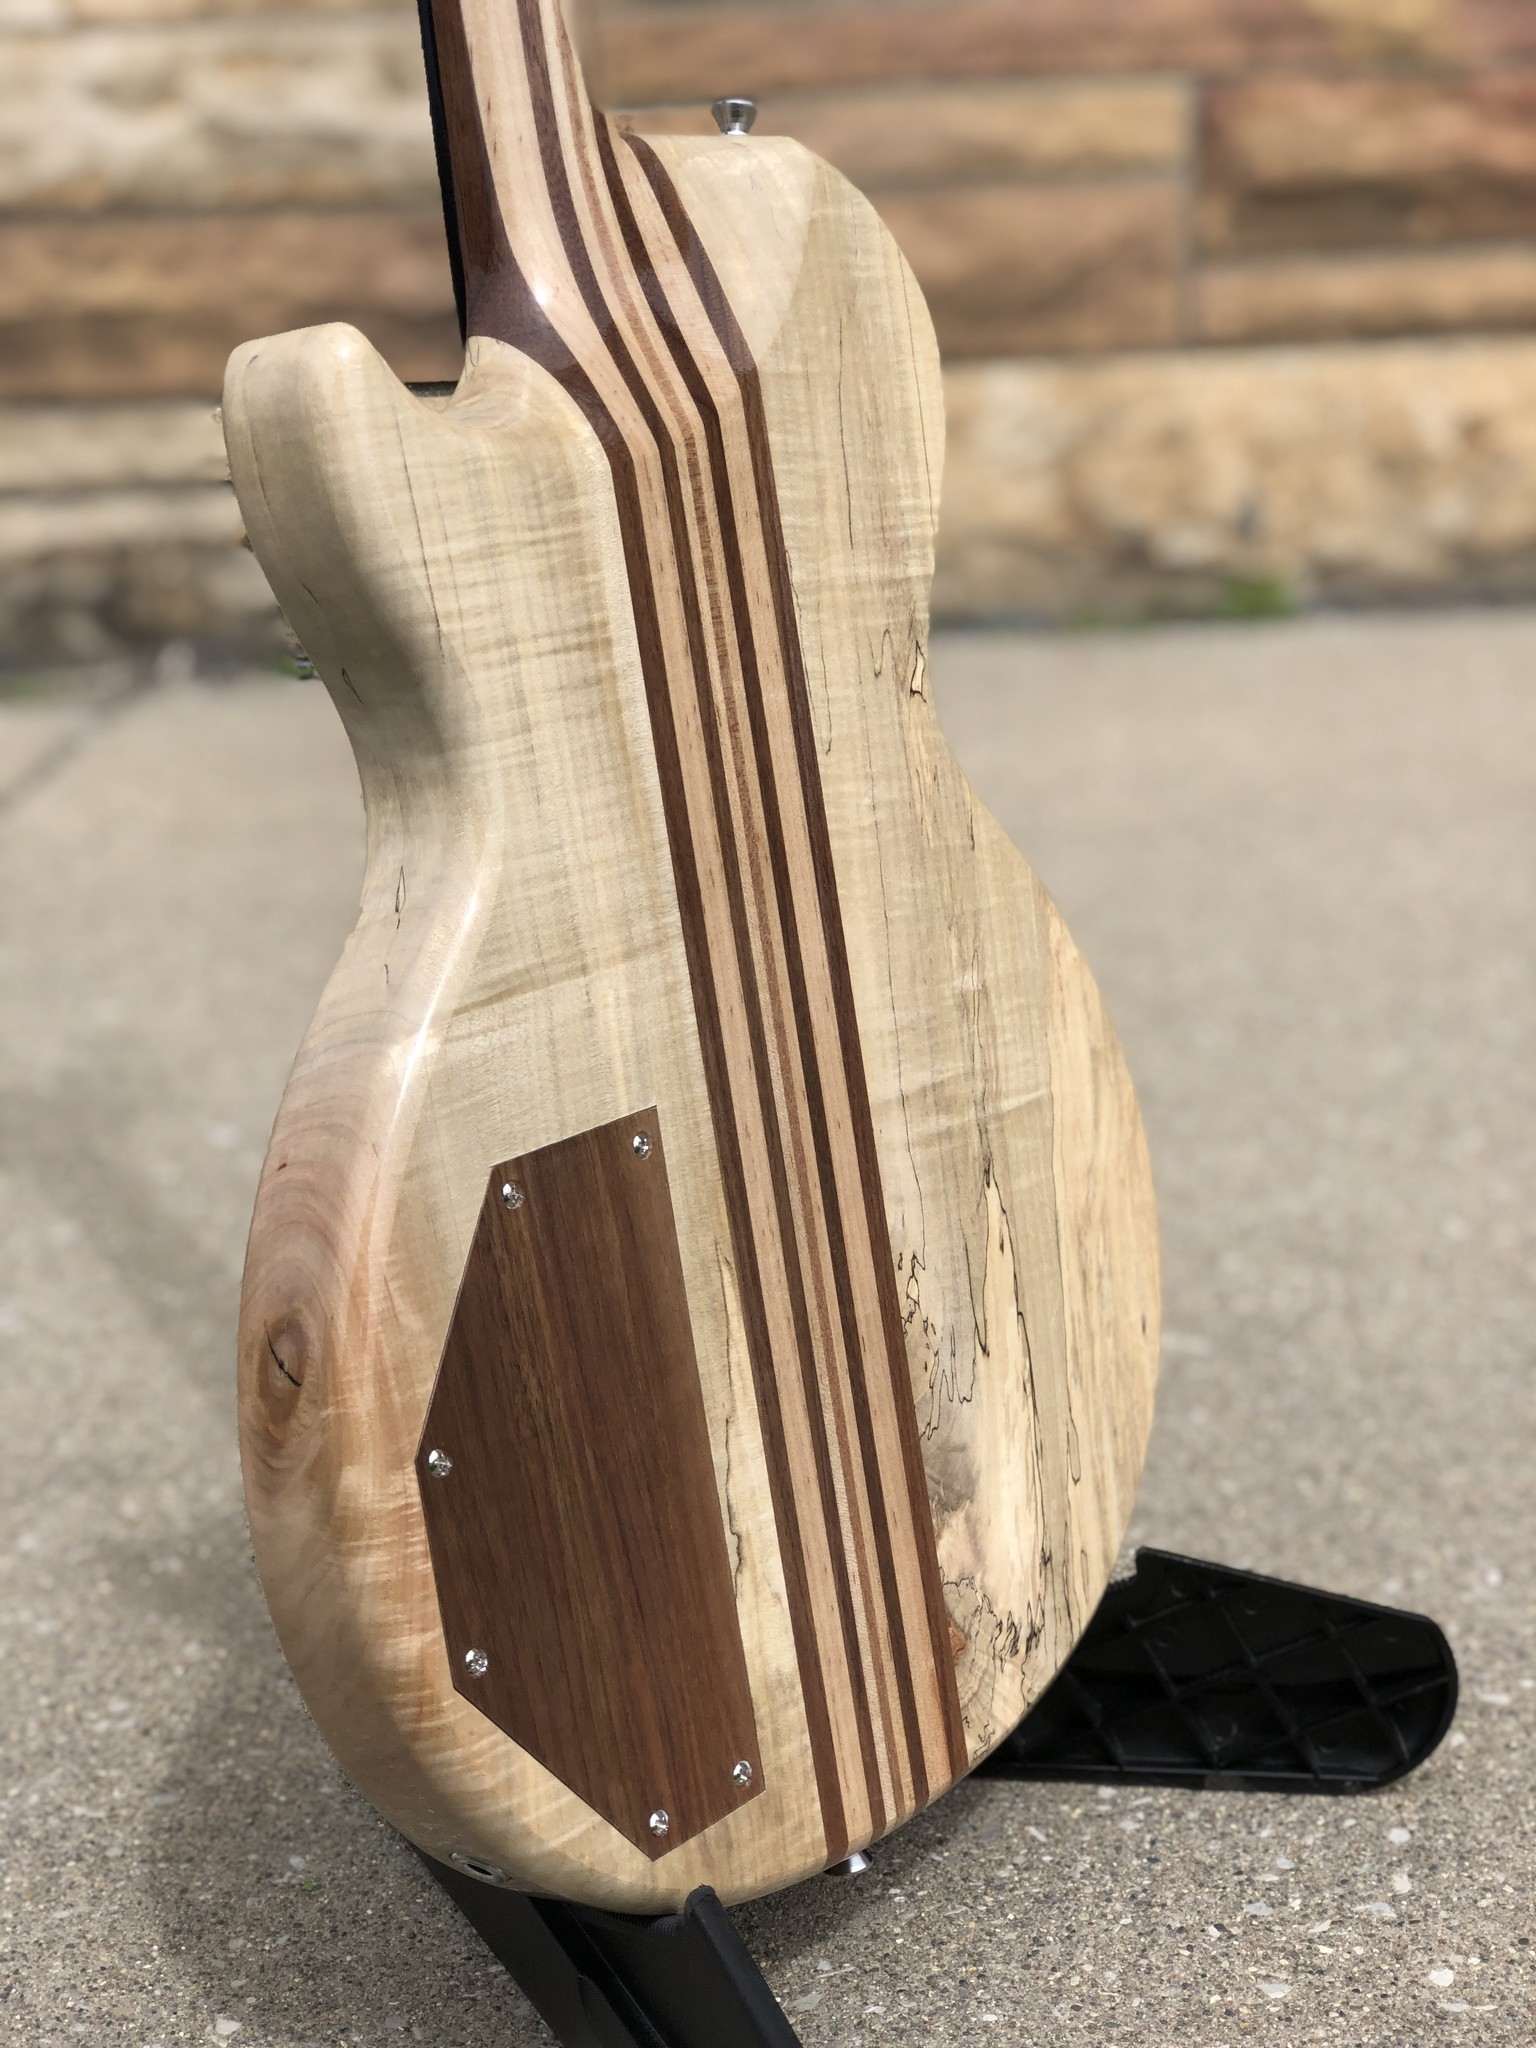 2021 Neck Through JML Single Cutaway-8